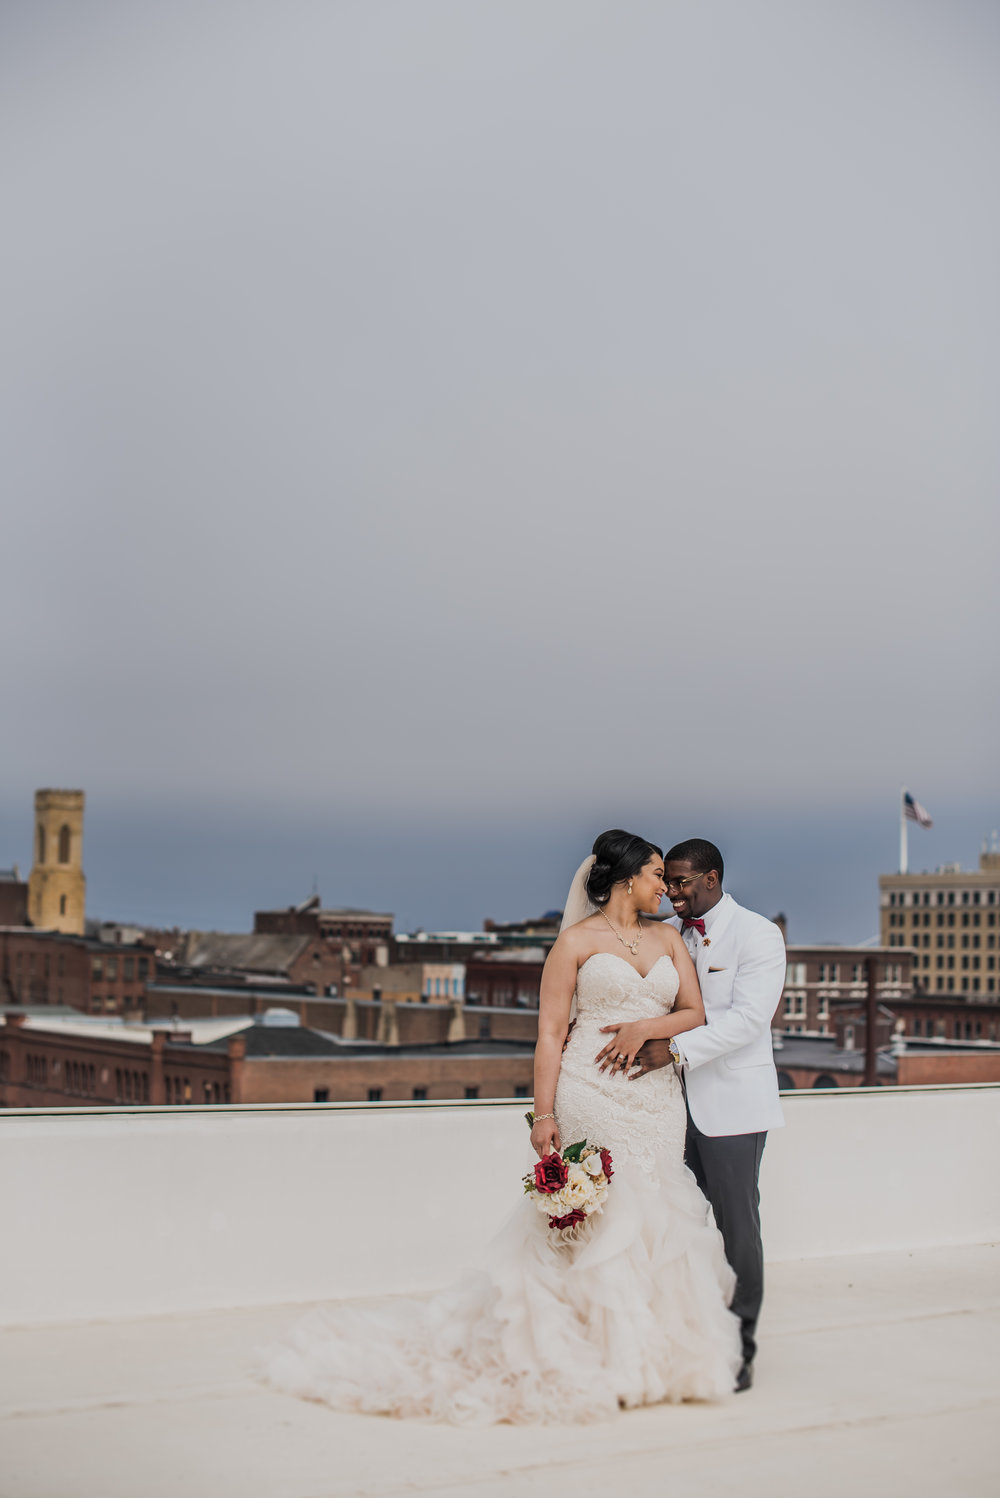 Burlington Iowa Wedding Midwest Photographer Melissa Cervantes _ Chantelle and Isaiah 291s.jpg